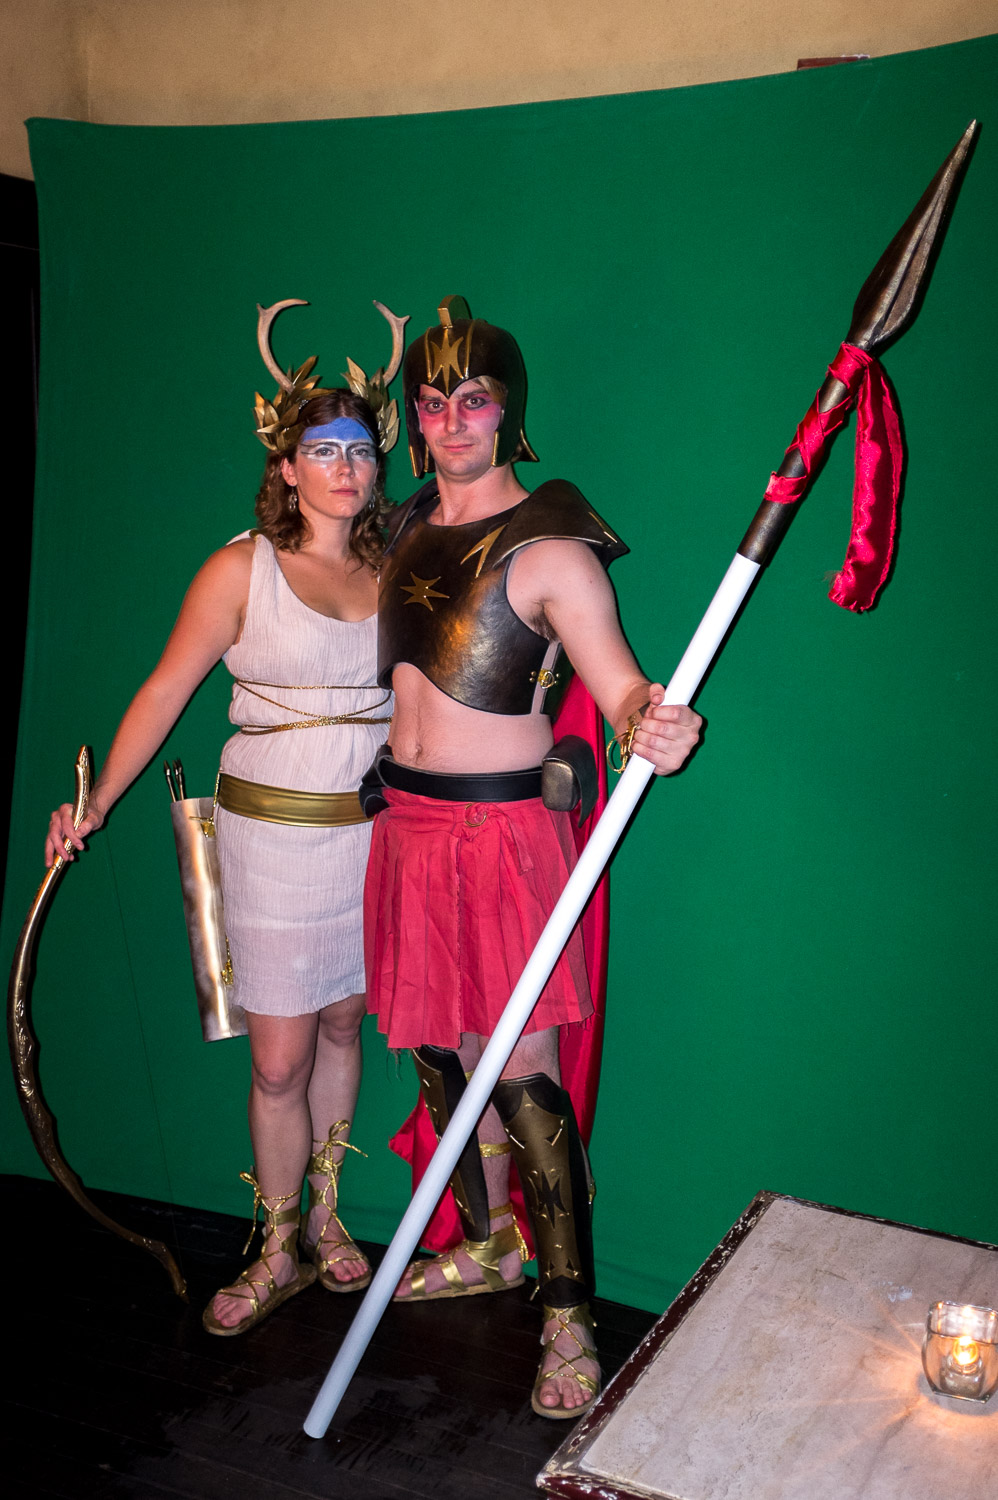 Ares and Aretmis on Halloween